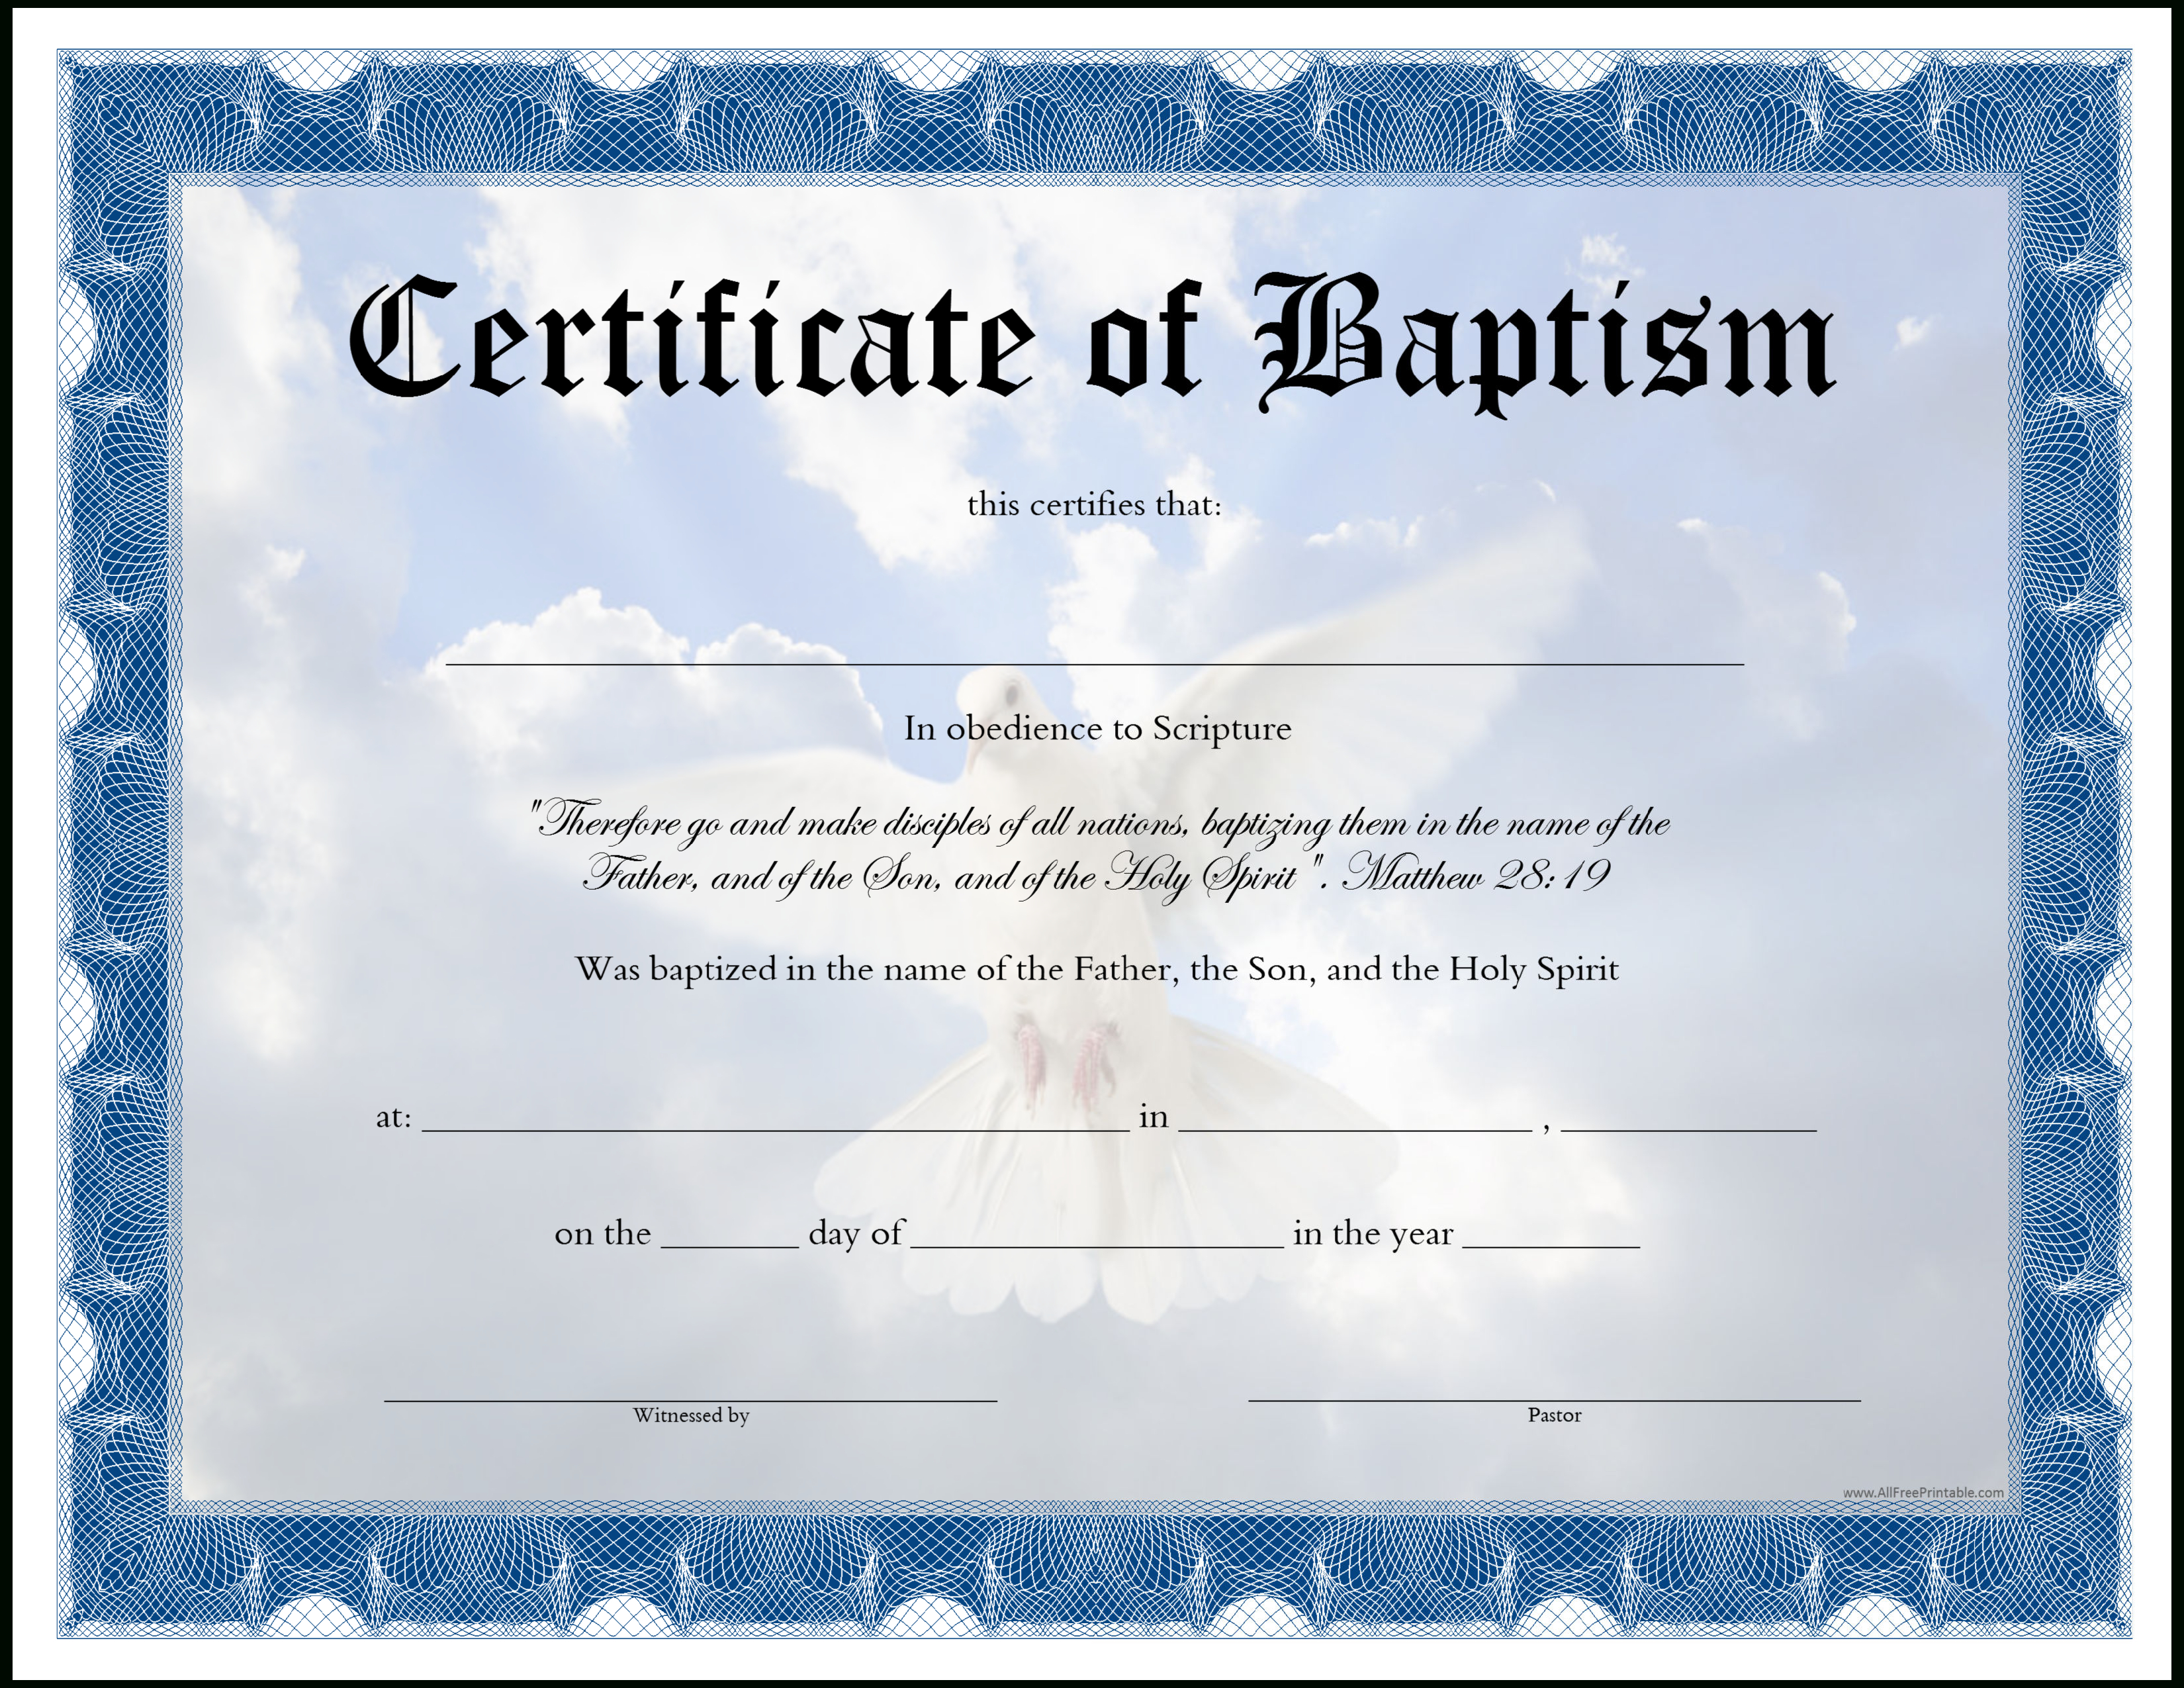 Baptism Certificate - How To Craft An Appealing Baptism Certificate - Free Printable Baptism Certificate